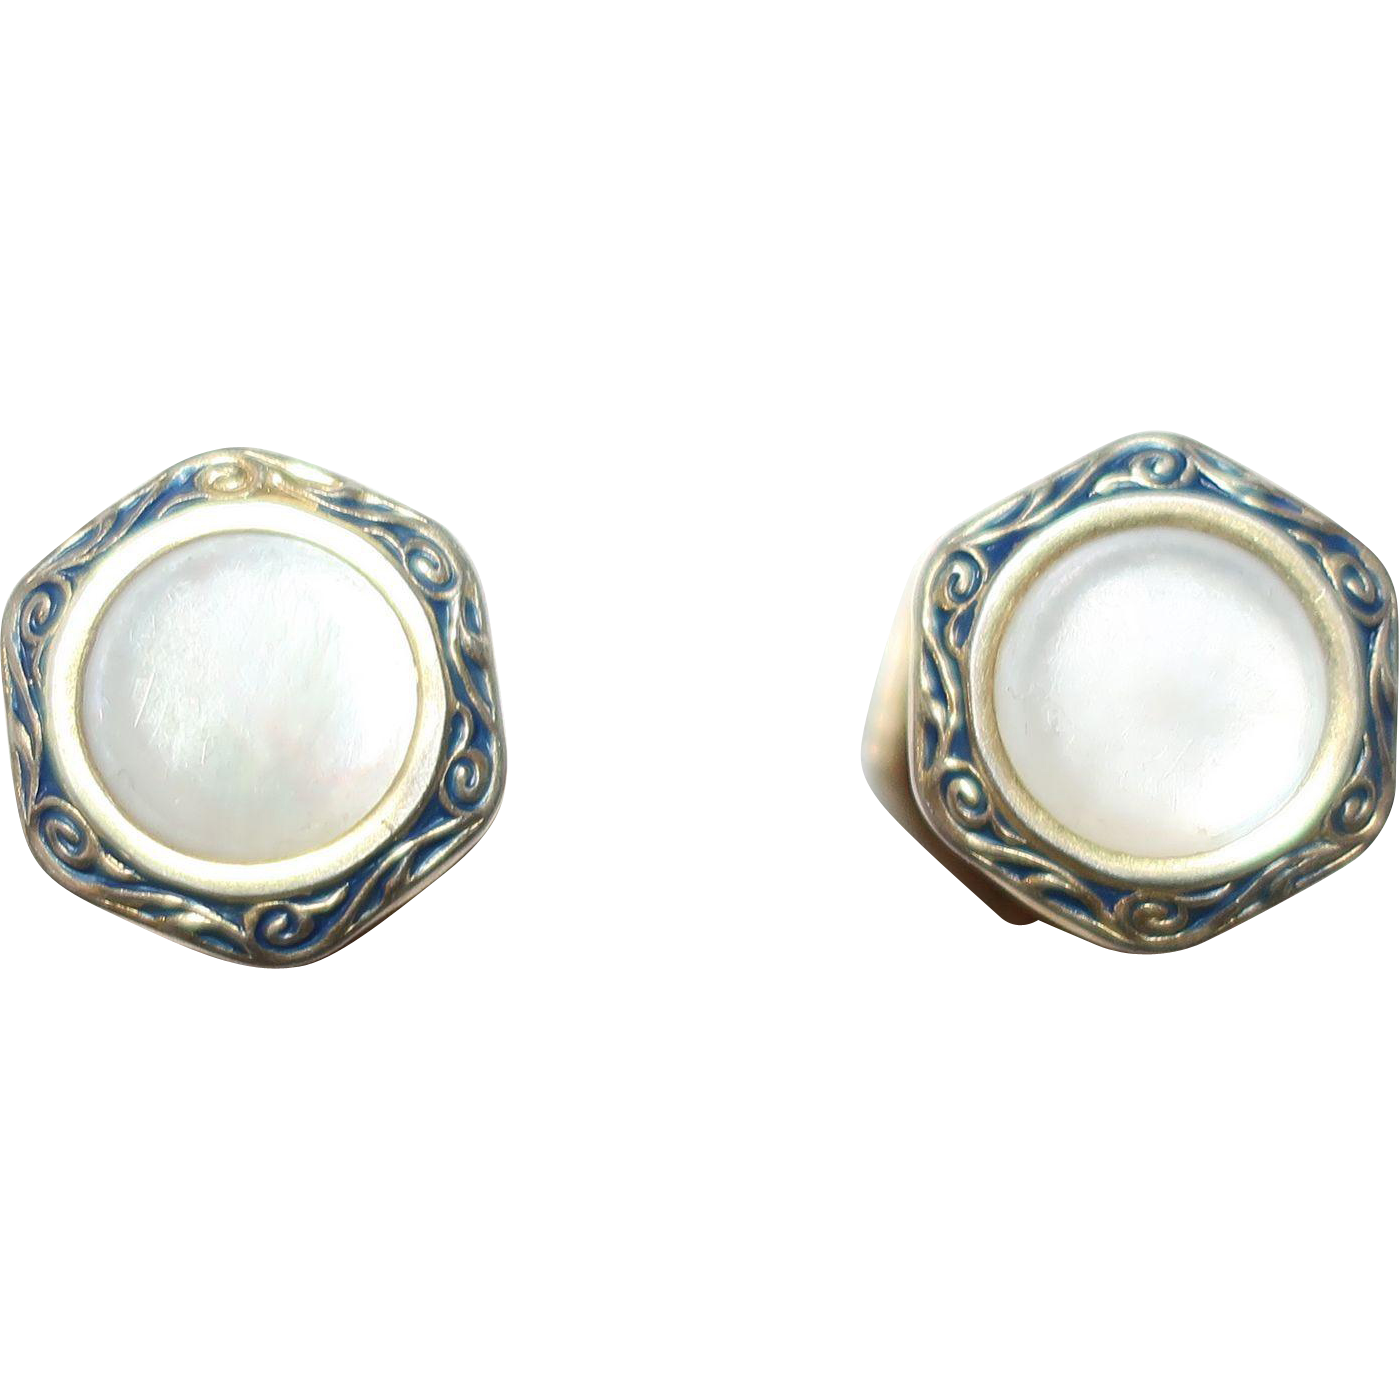 B&W Co Pat'd 1923 Kum-A-Part Cufflinks White Mother of Pearl Style Stone